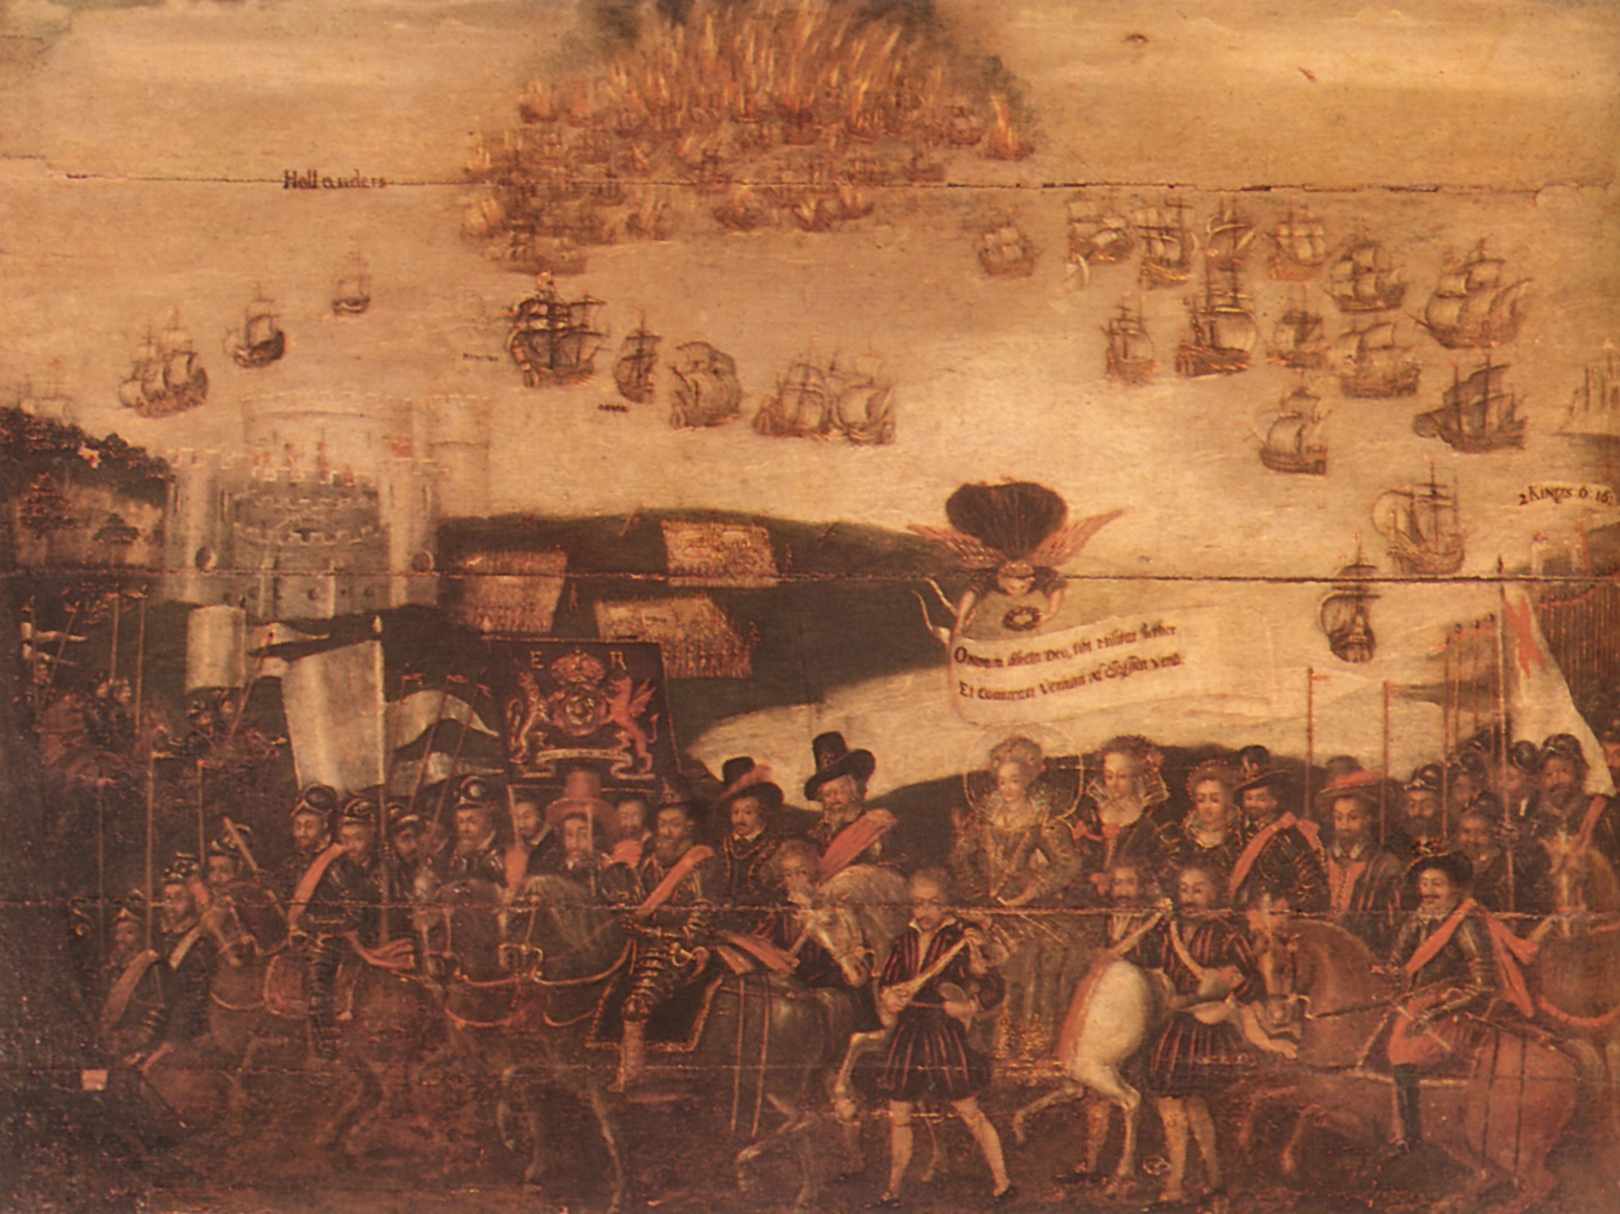 queen elizabeth spanish armada speech analysis Troops assembled there to encounter the spanish armada 1654, in which he gives the familiar text of the queen's speech2 these two texts 'miller christy queen elizabeth i s oration at tilbury camp.